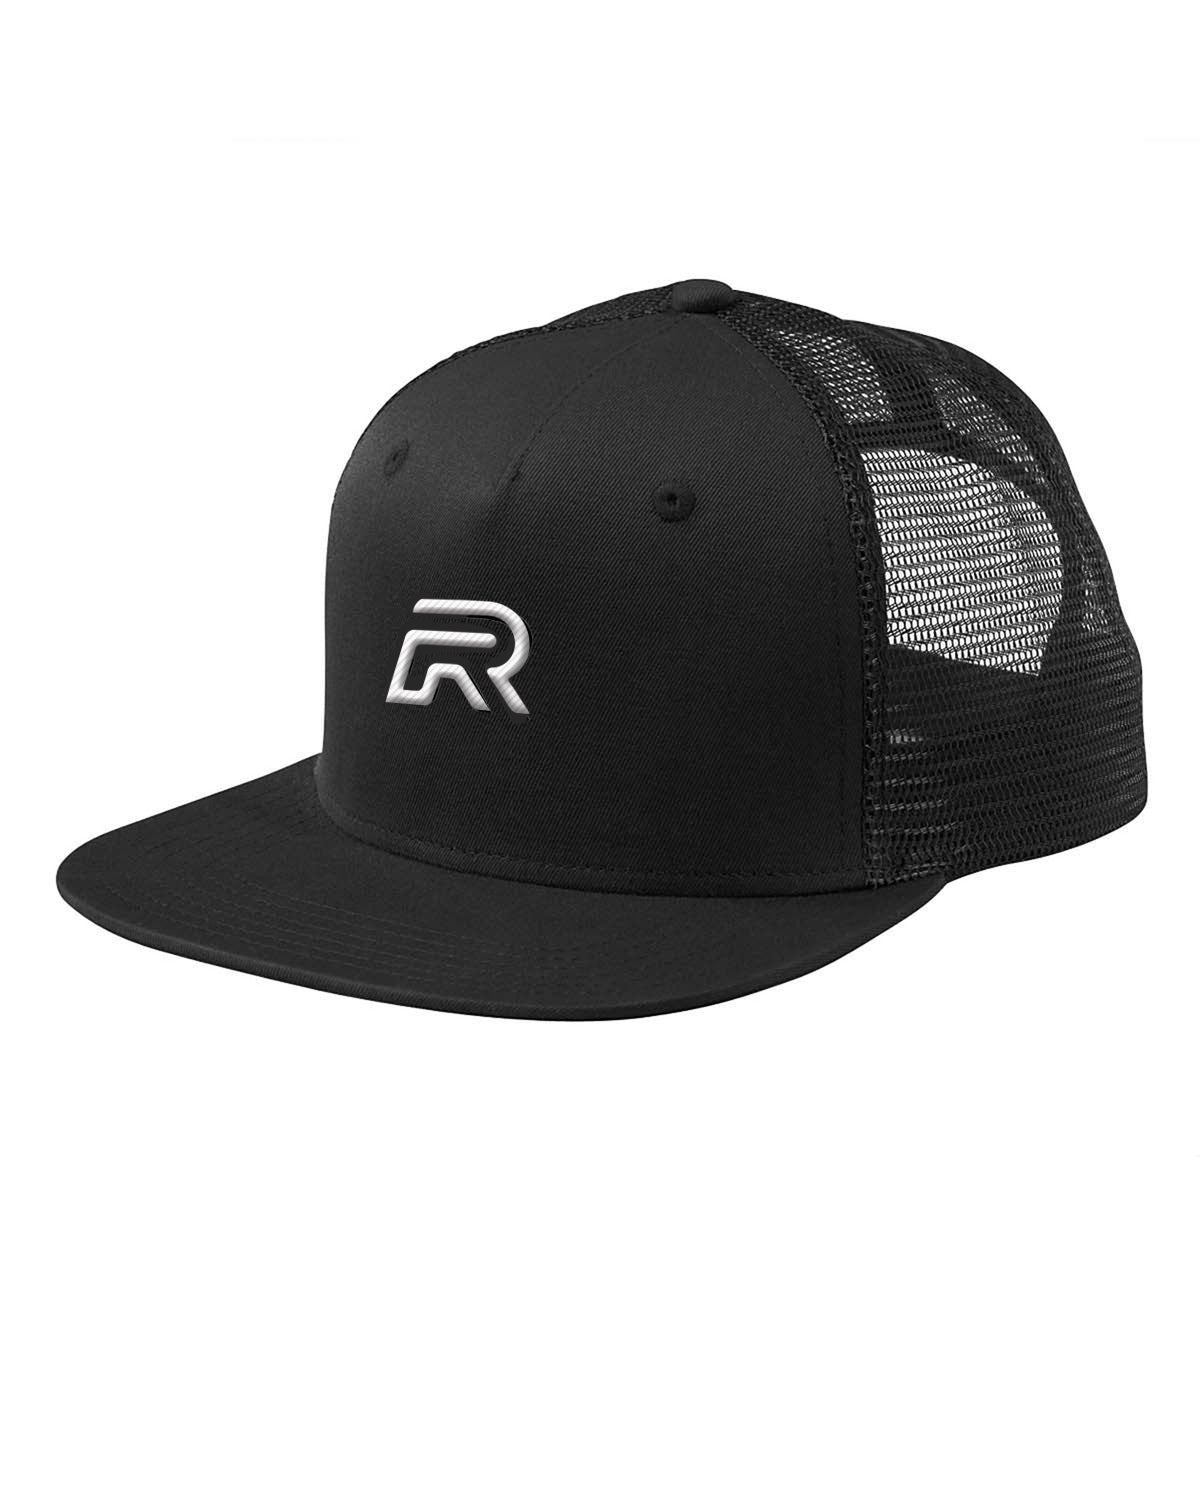 Black White Trucker Hat. The Rival Collection 2f21344cfc8f